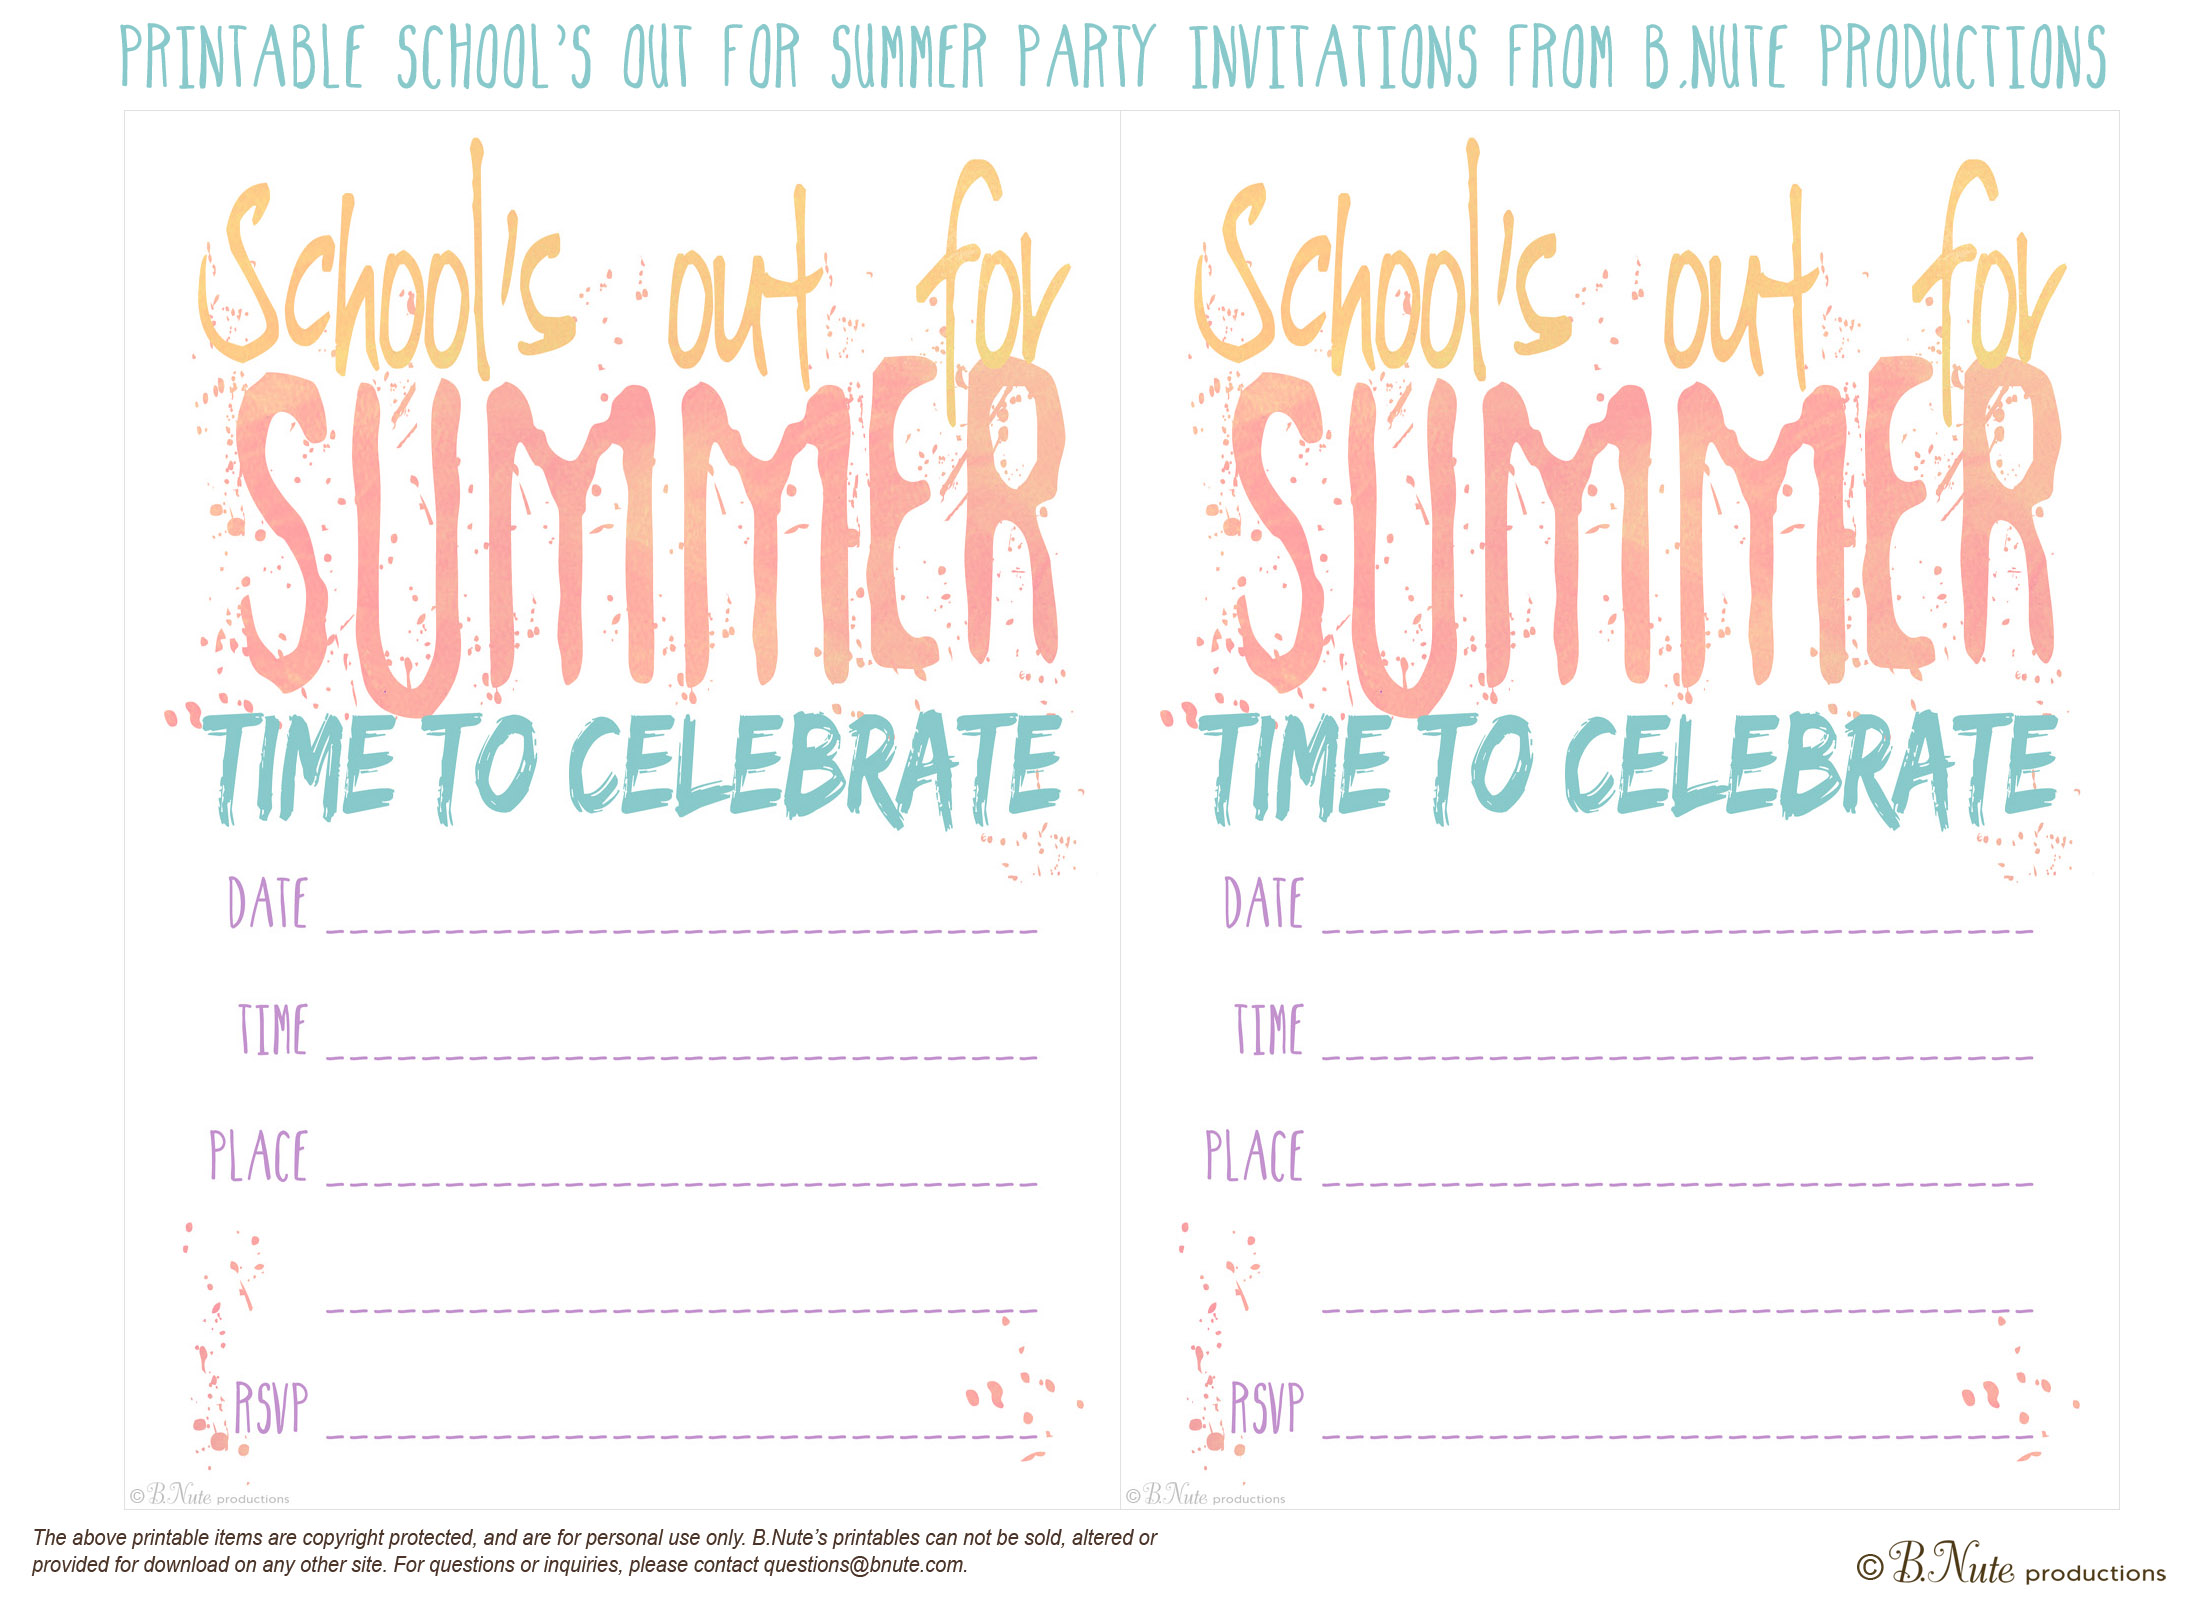 bnute productions: Free Printable School\'s Out for Summer Party ...